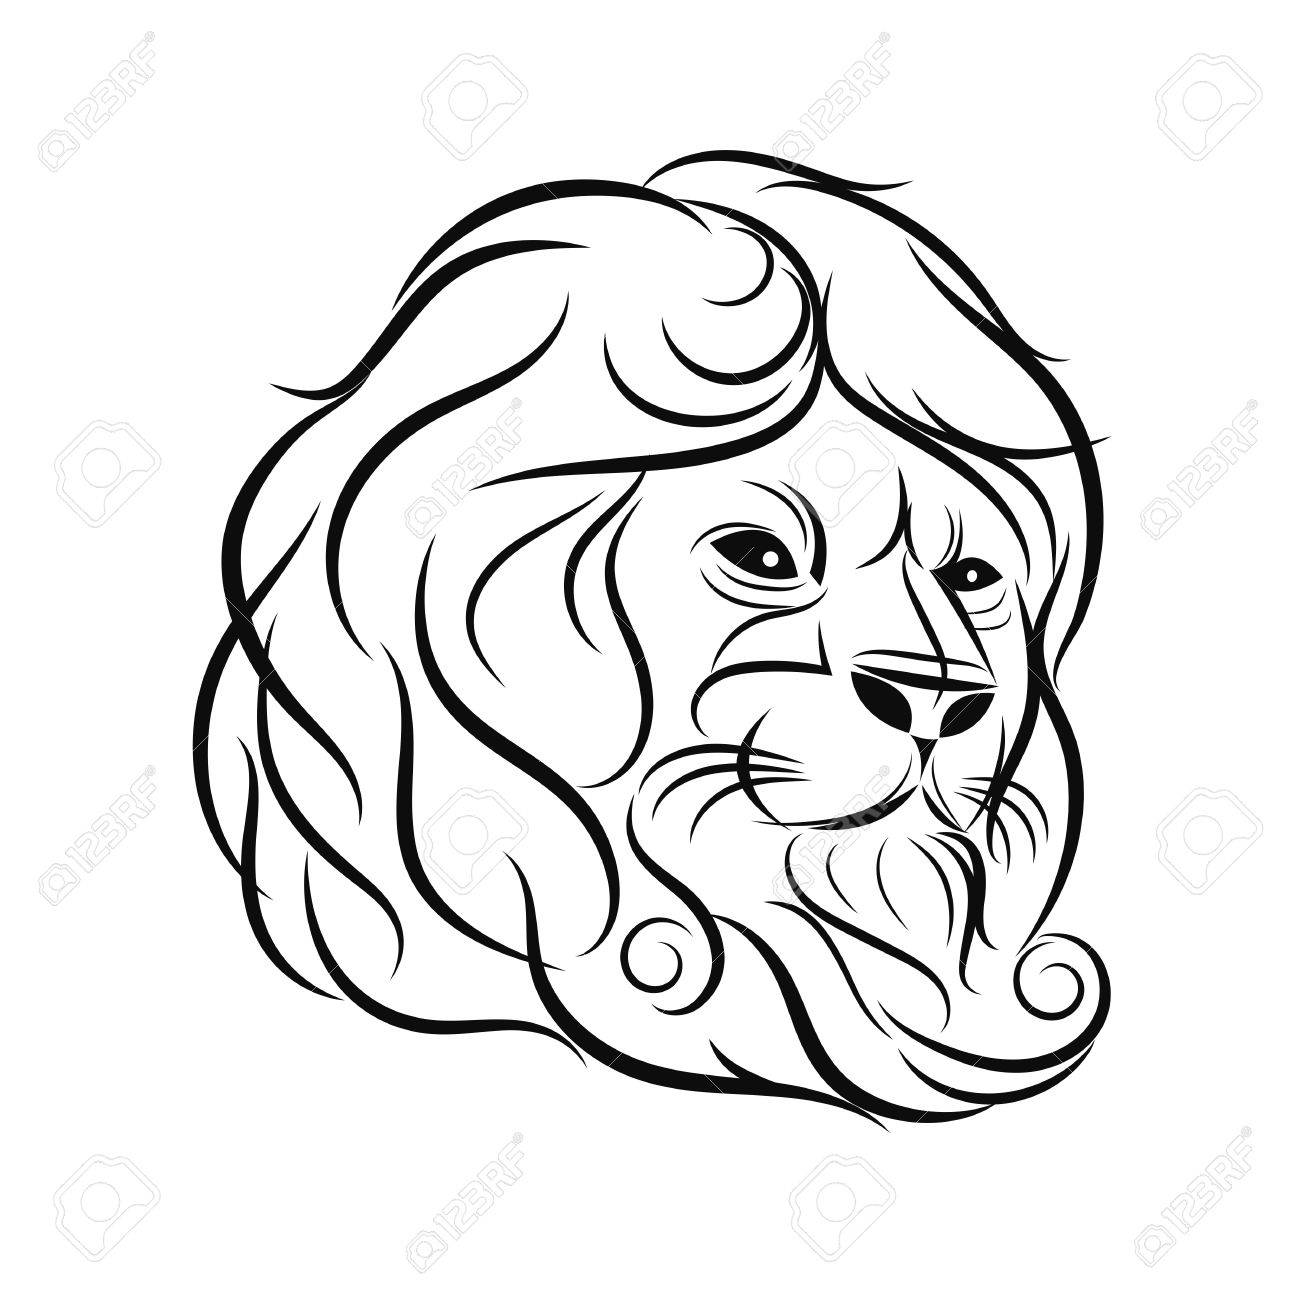 Hand Draw Lion Head Outline Design On Gray Background Royalty Free Cliparts Vectors And Stock Illustration Image 64603914 Collection of lion head image (33) lion head vector hd outline lion face drawing hand draw lion head outline design on gray background